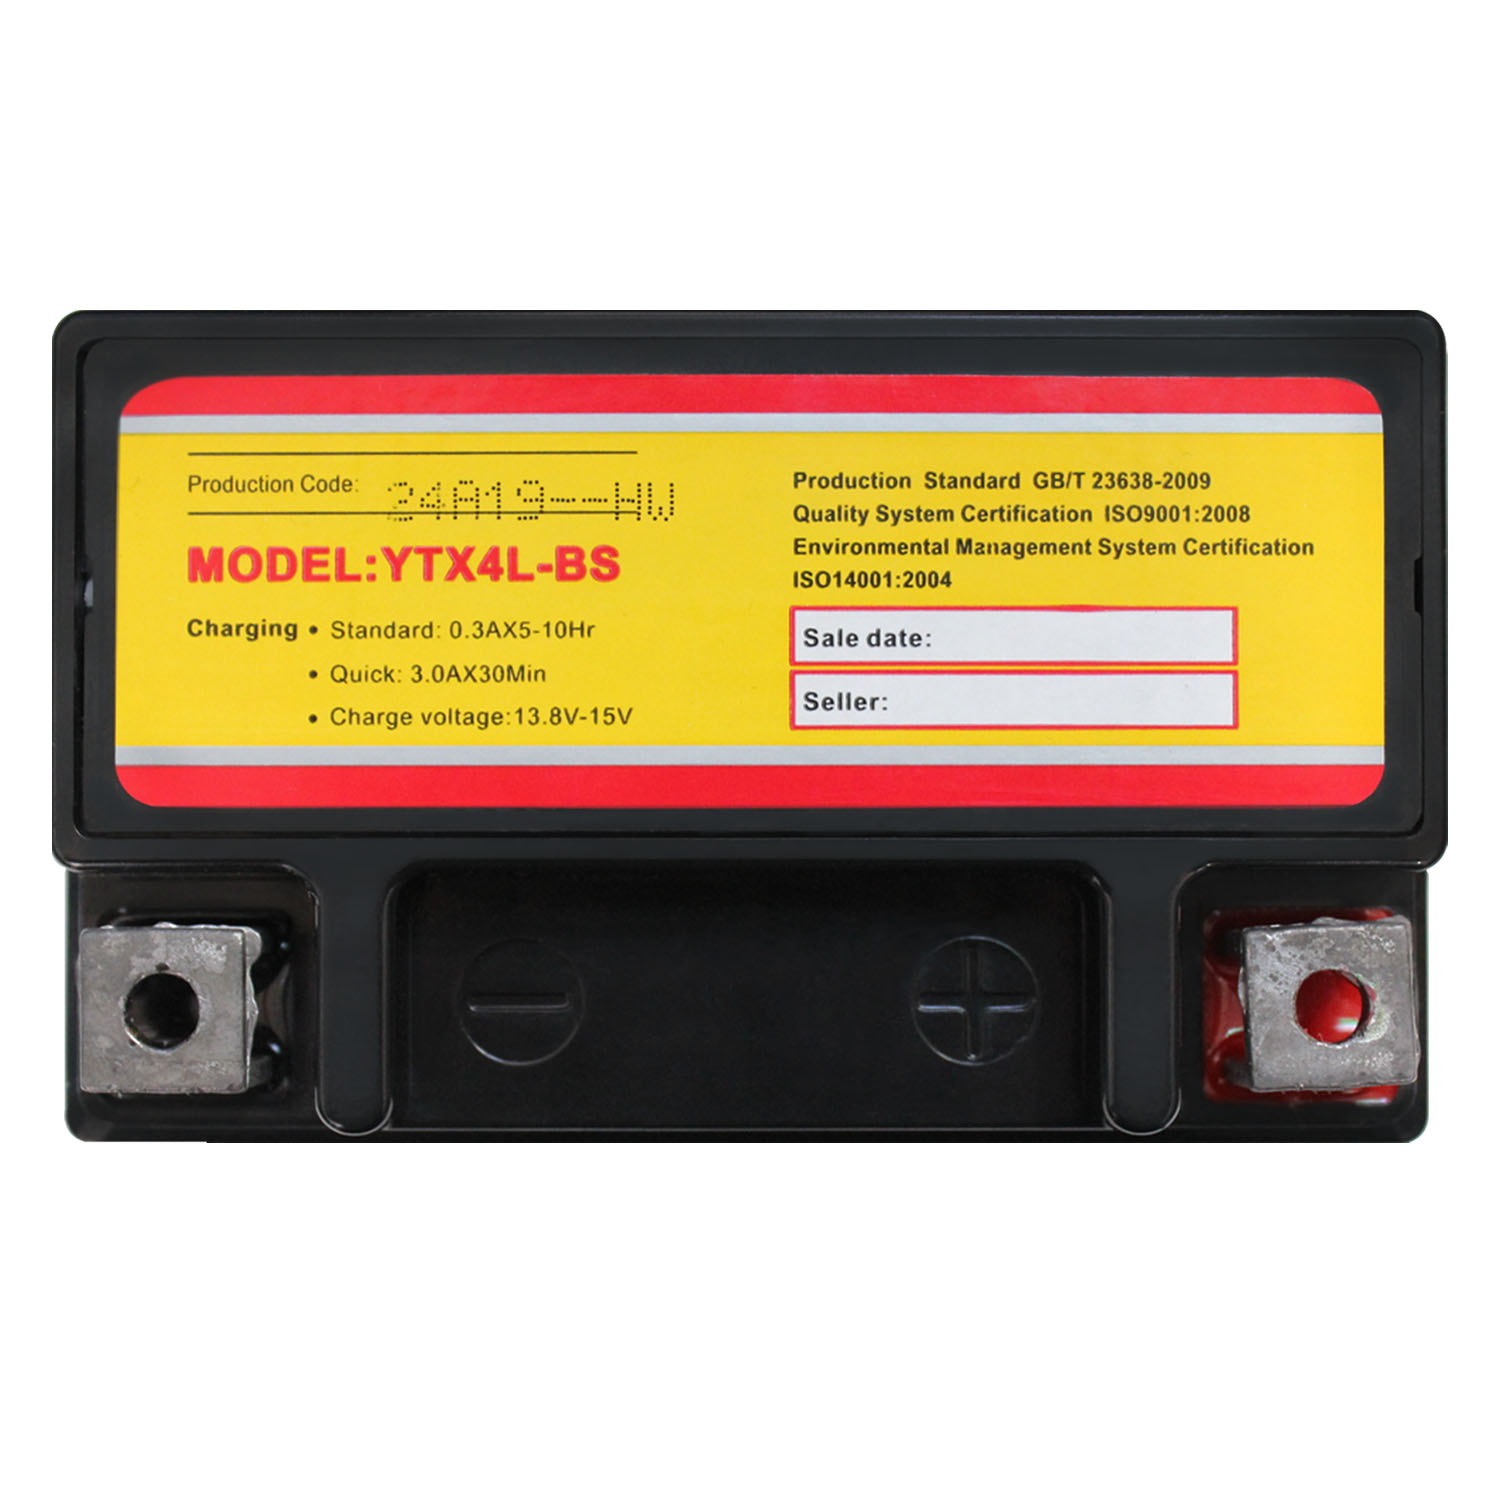 YTX4L-BS 12 VOLT 3AH MOTORCYCLE BATTERY REPLACES YTX4L-BS - 4 PACK - 4